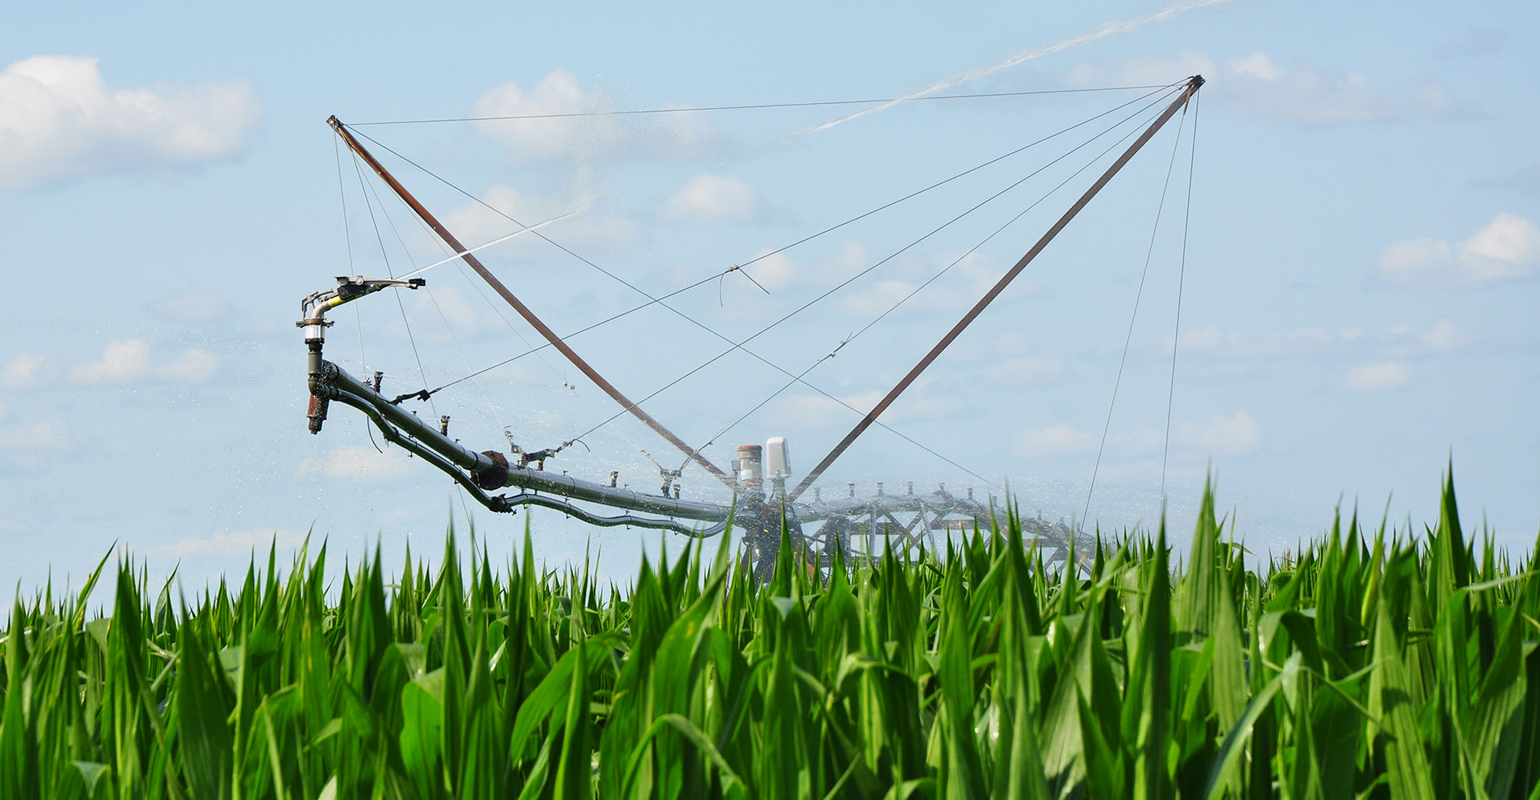 Fertigating—applying fertilizer through the irrigator—provides precise application of fertilizer when crops need it and can use it